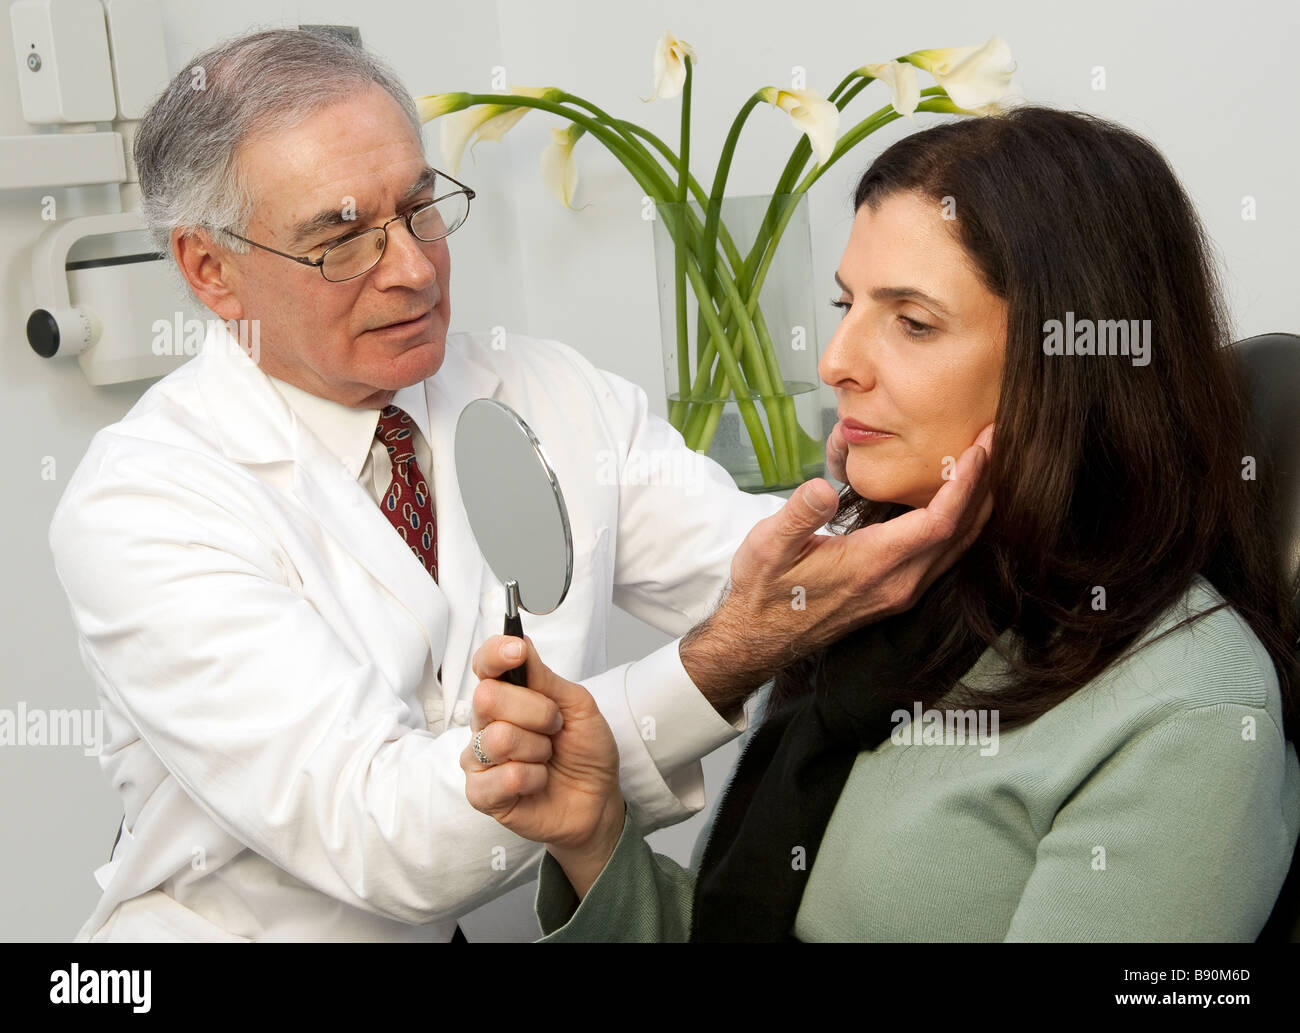 Cosmetic surgery consultation with patient. - Stock Image